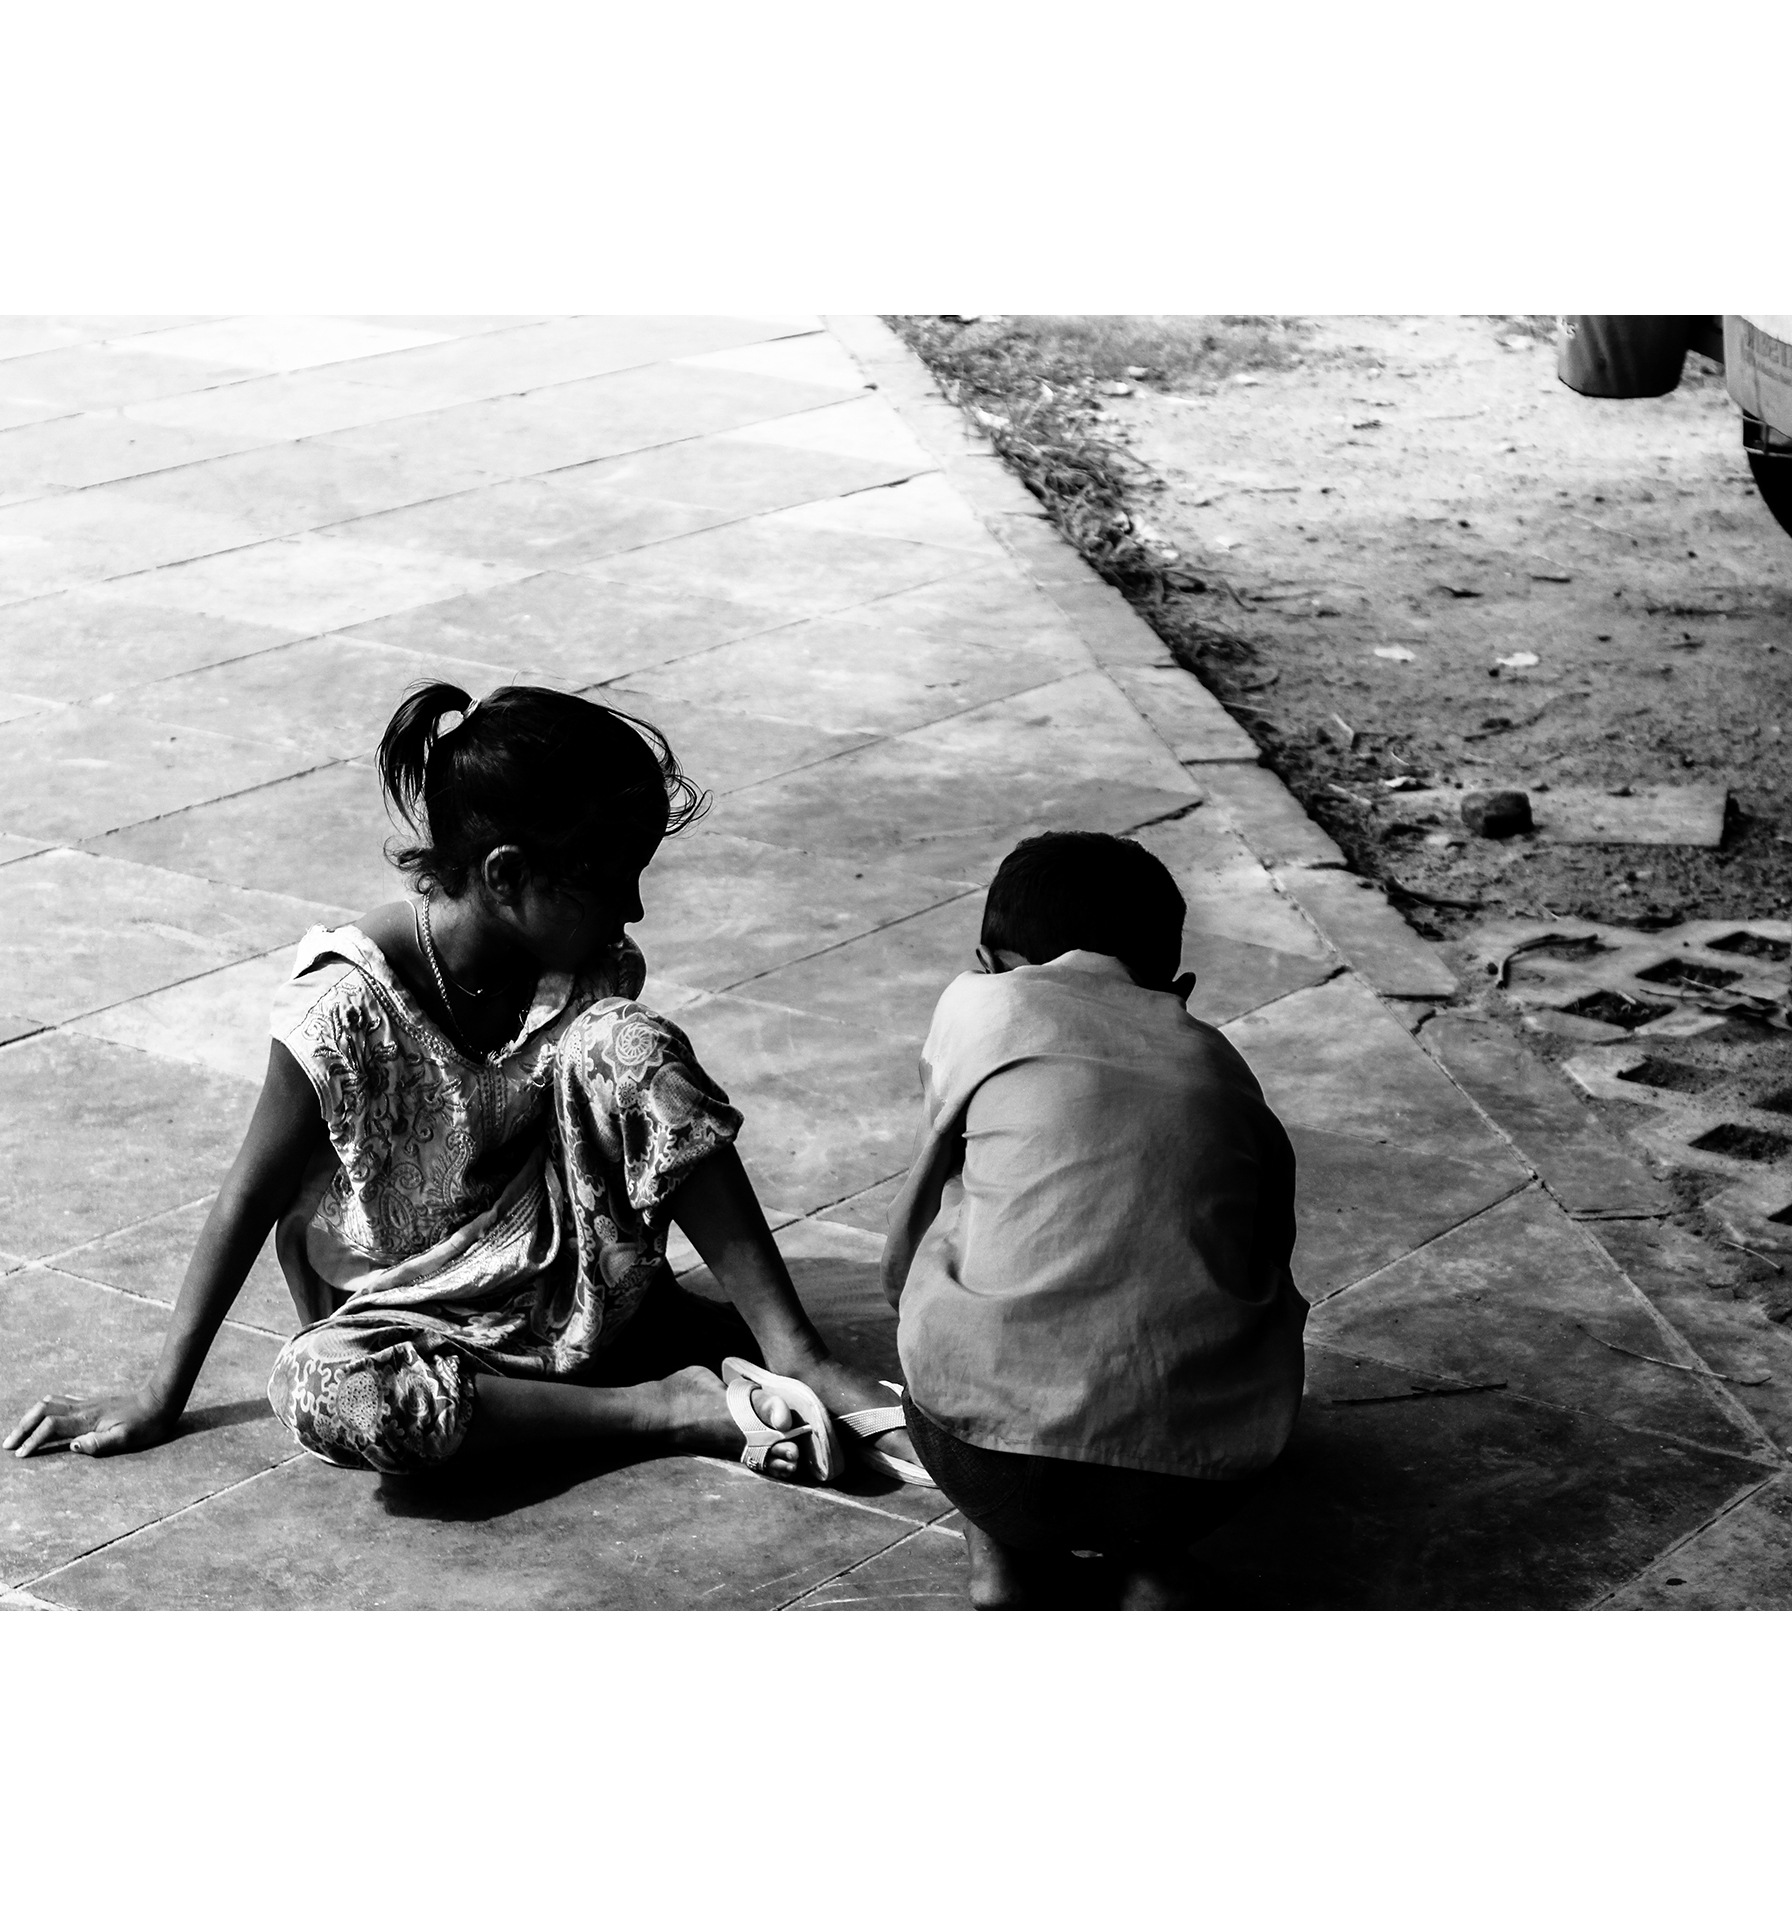 Poverty by Mohit_kumarofficial